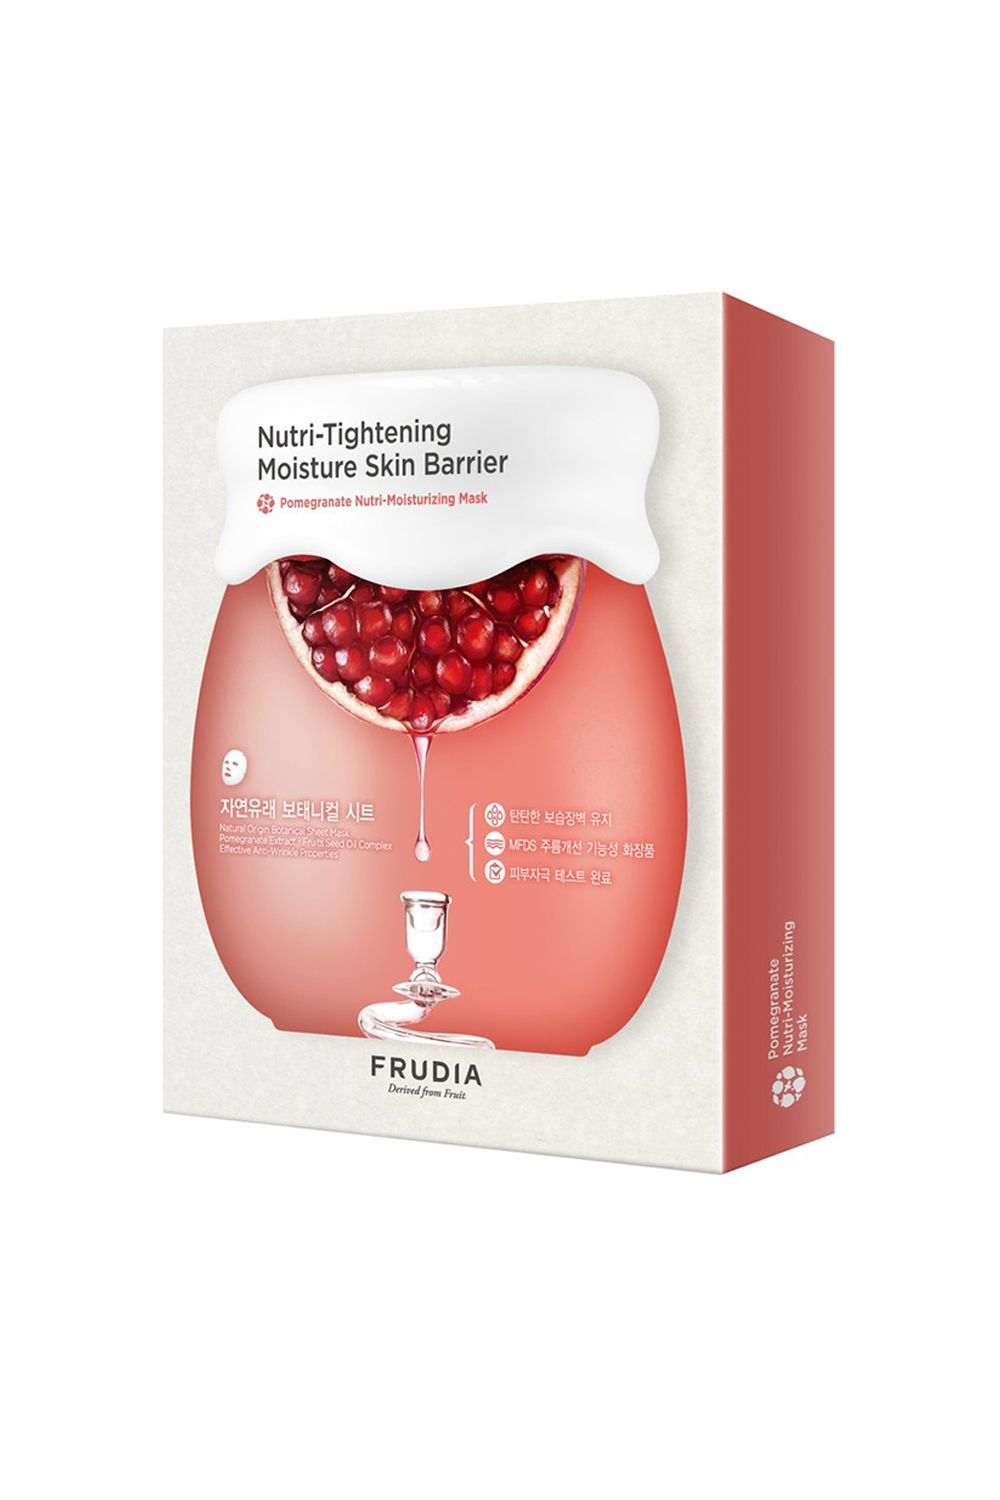 Frudia Pomegranate Nutri-Moisturizing Sheet Mask Frudia Pomegranate Nutri-Moisturizing Sheet Mask, $2 SHOP IT This mask is crafted with pomegranate extracts to reduce the appearance of wrinkles and lock in moisture while you're relaxing.